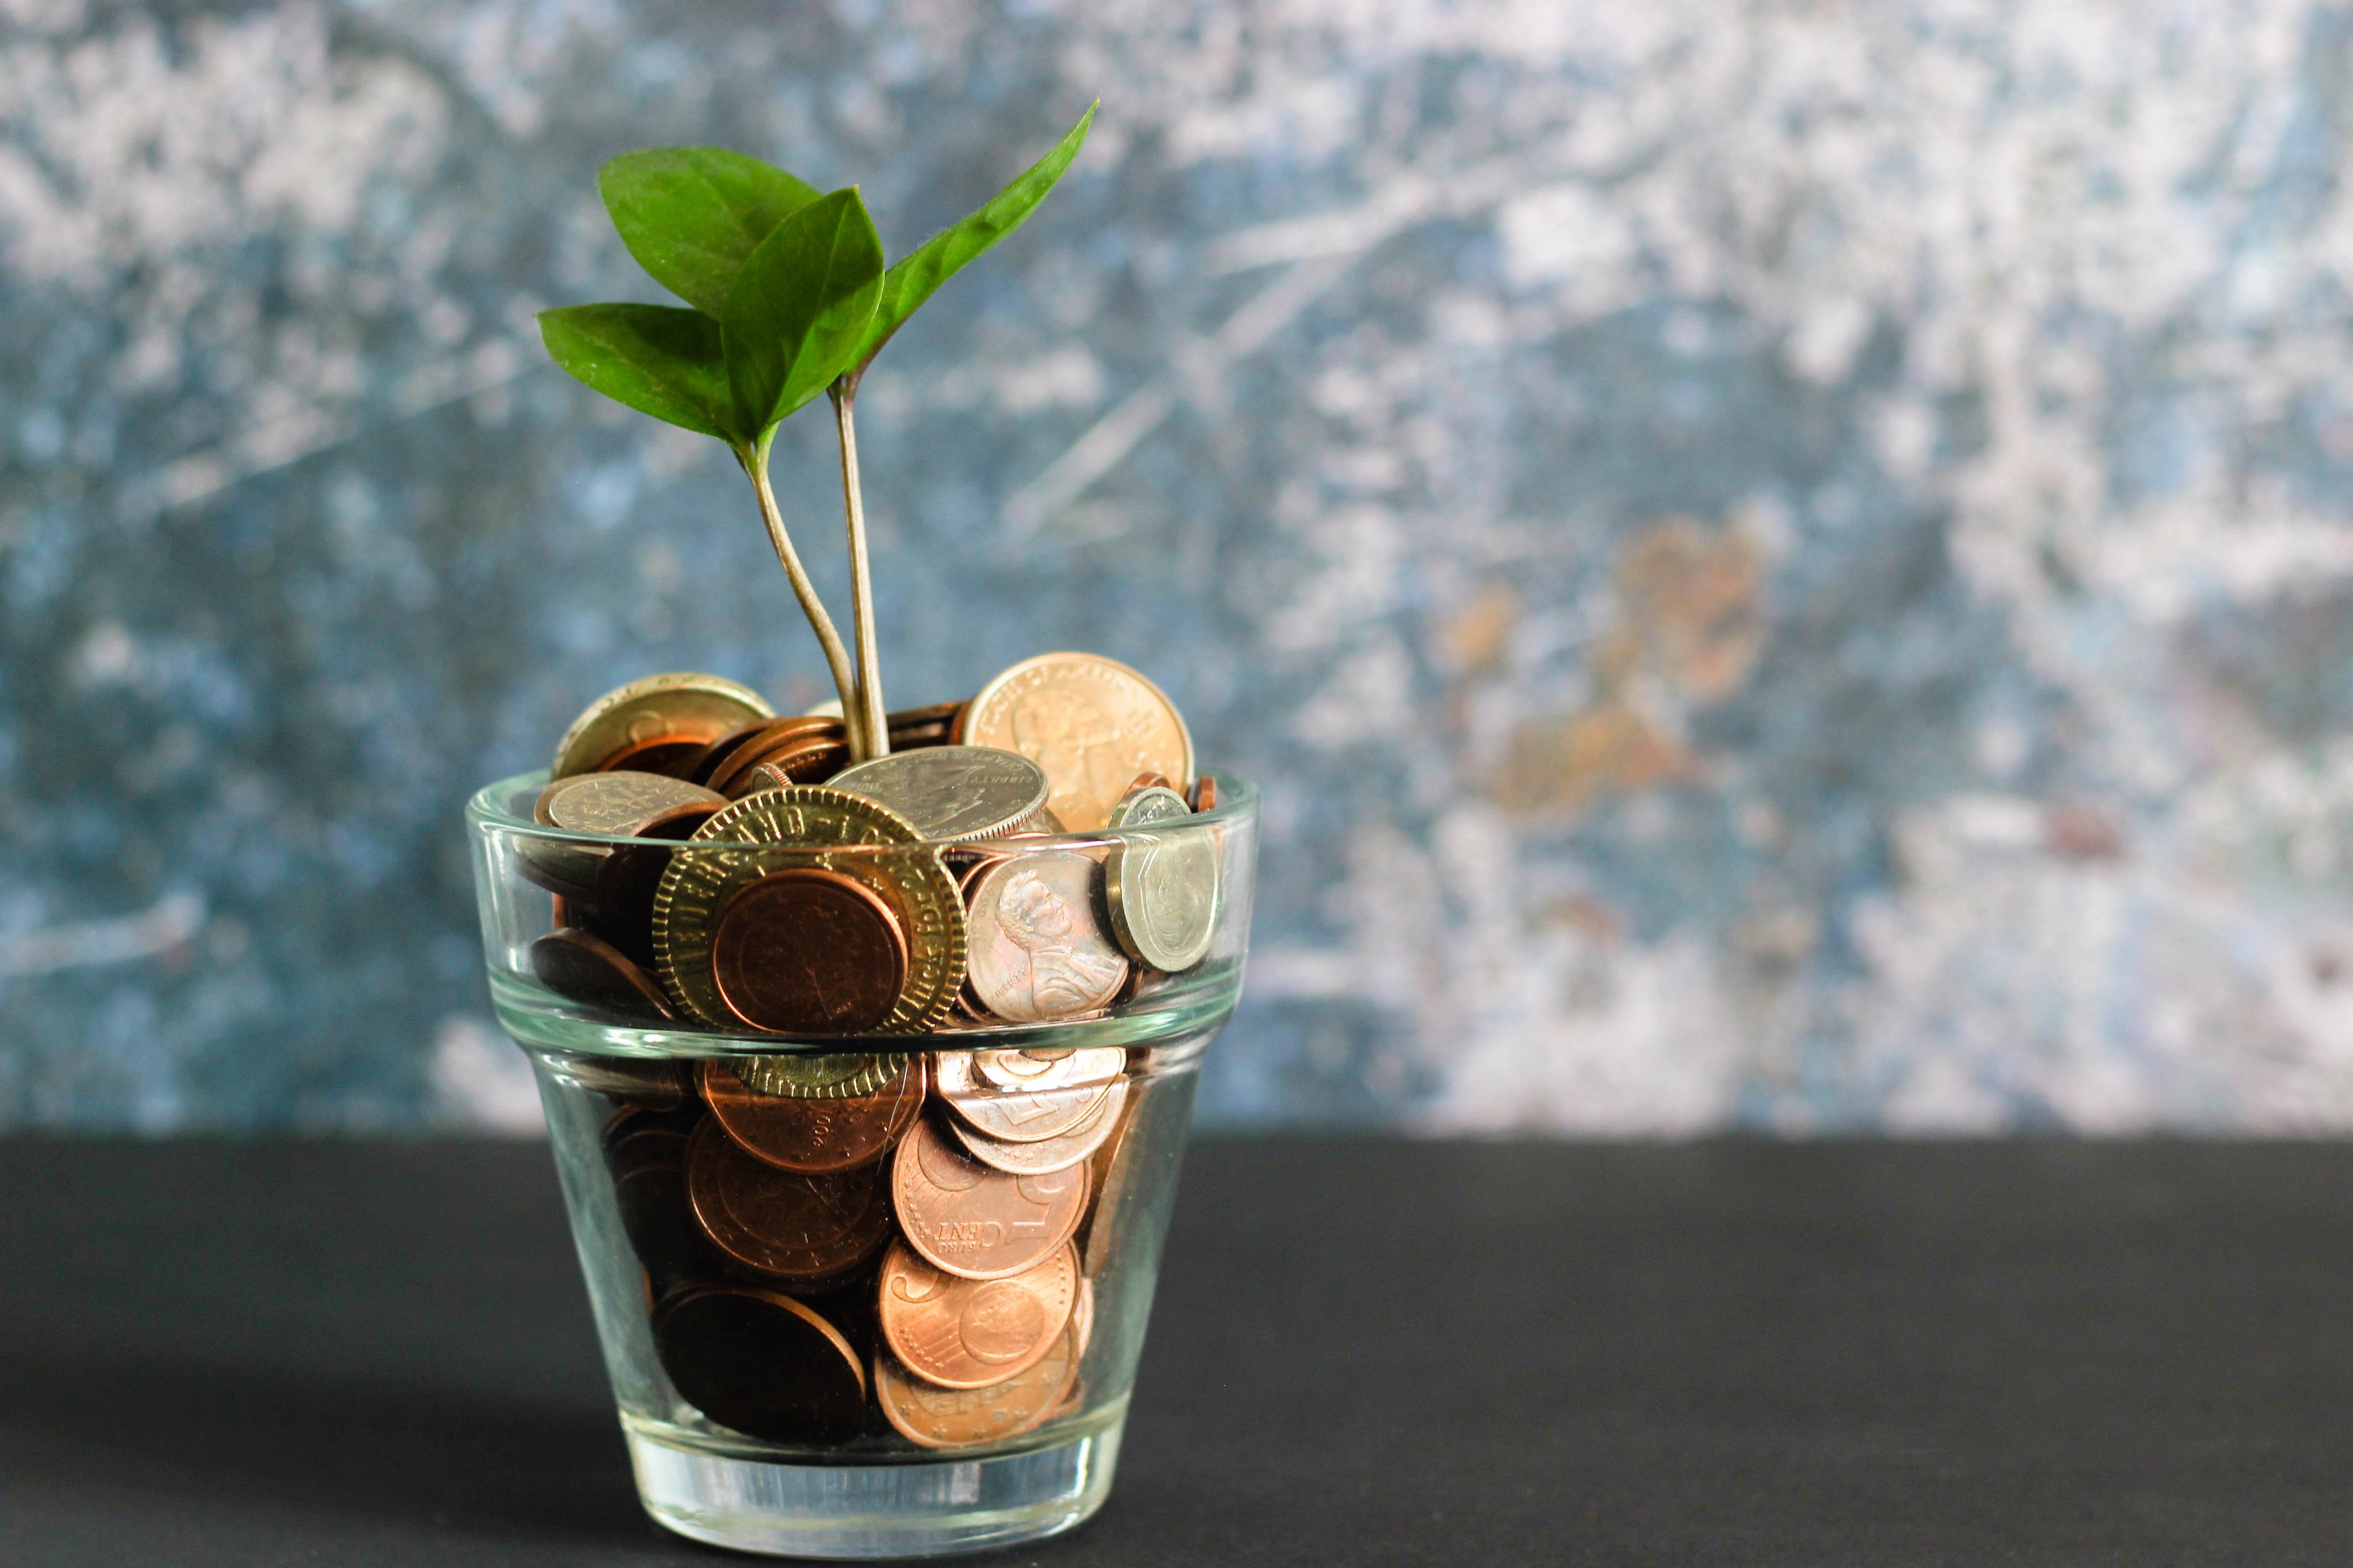 Money in a plant